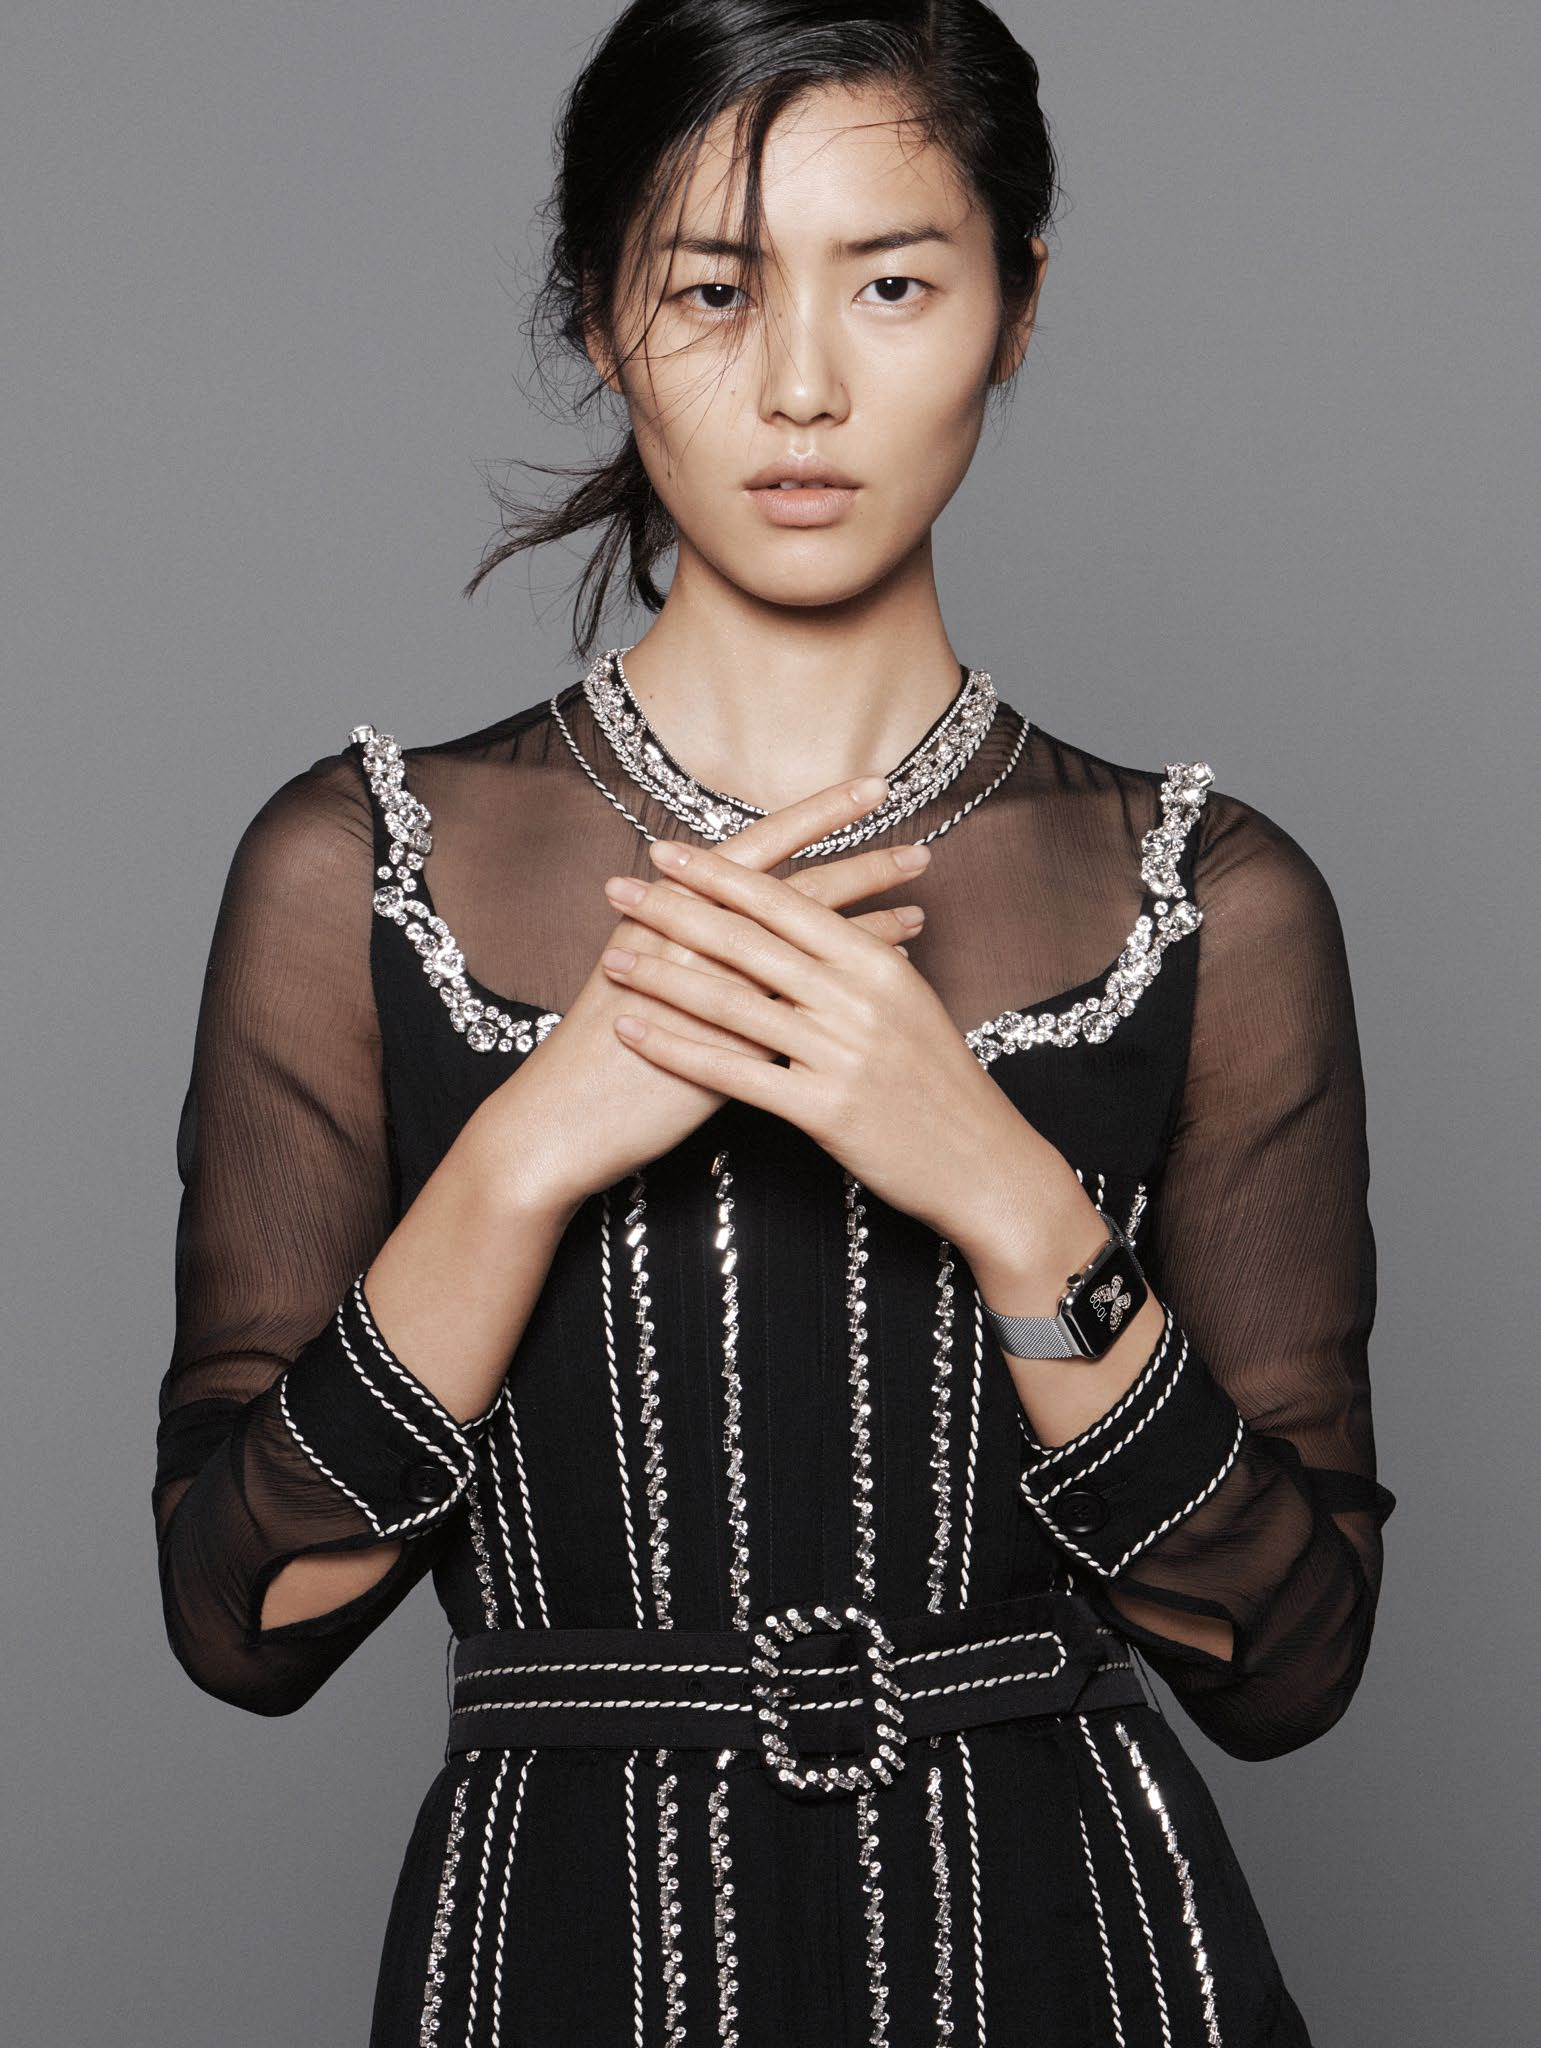 liu-wen-by-david-sims-for-vogue-china-november-2014-2